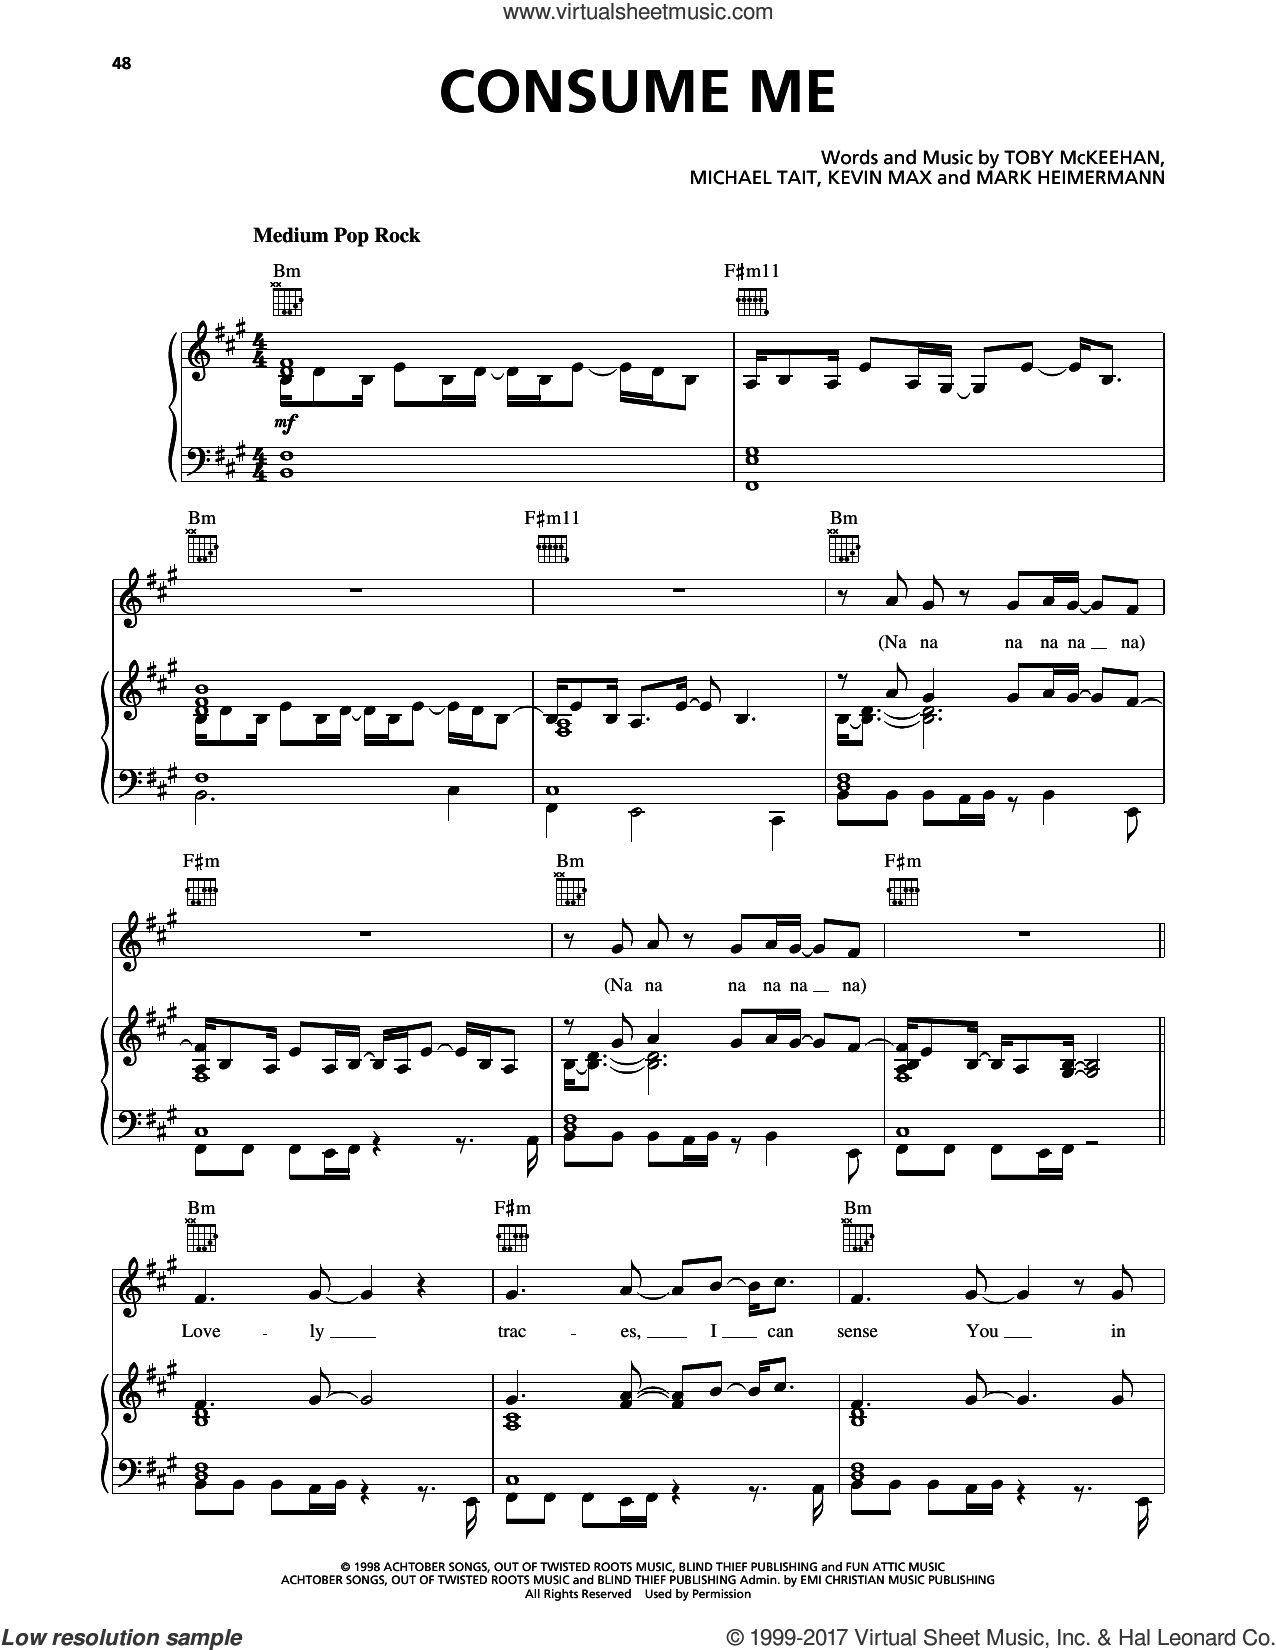 Consume Me sheet music for voice, piano or guitar by dc Talk, Kevin Max, Michael Tait and Toby McKeehan, intermediate. Score Image Preview.